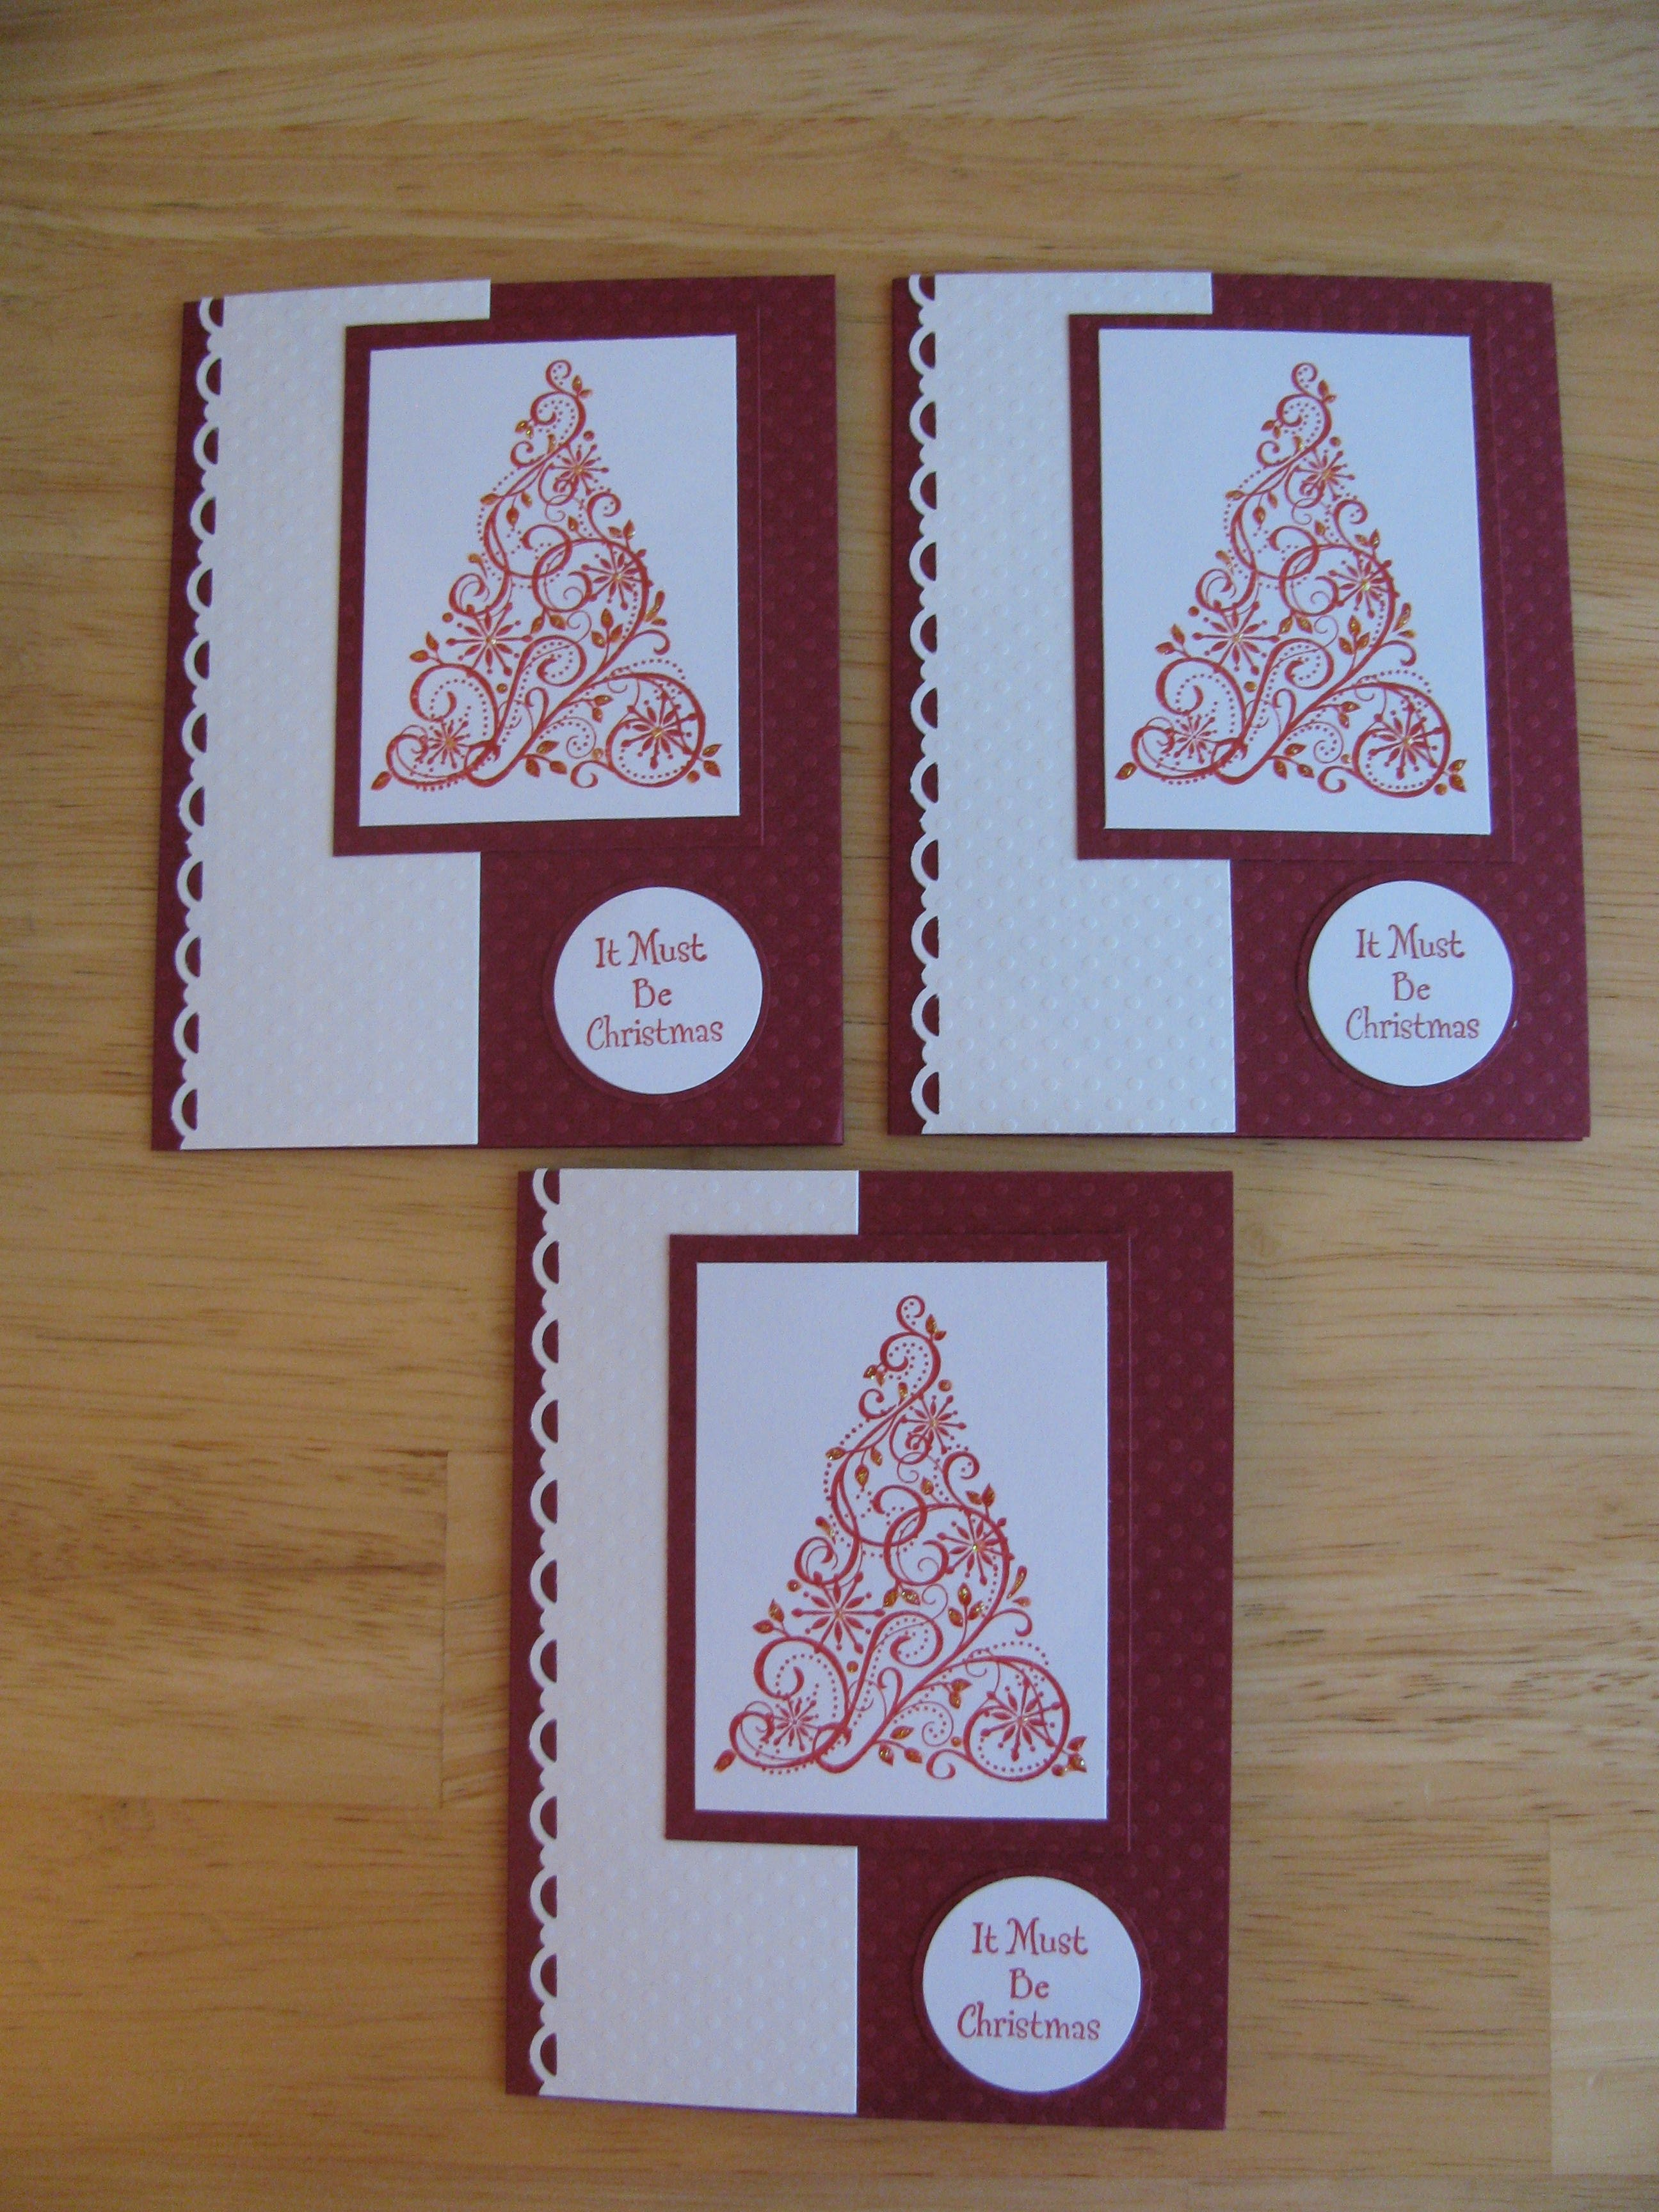 10 Beautiful Stampin Up Christmas Card Ideas stampin up christmas cards karens cards ideas 1 2021